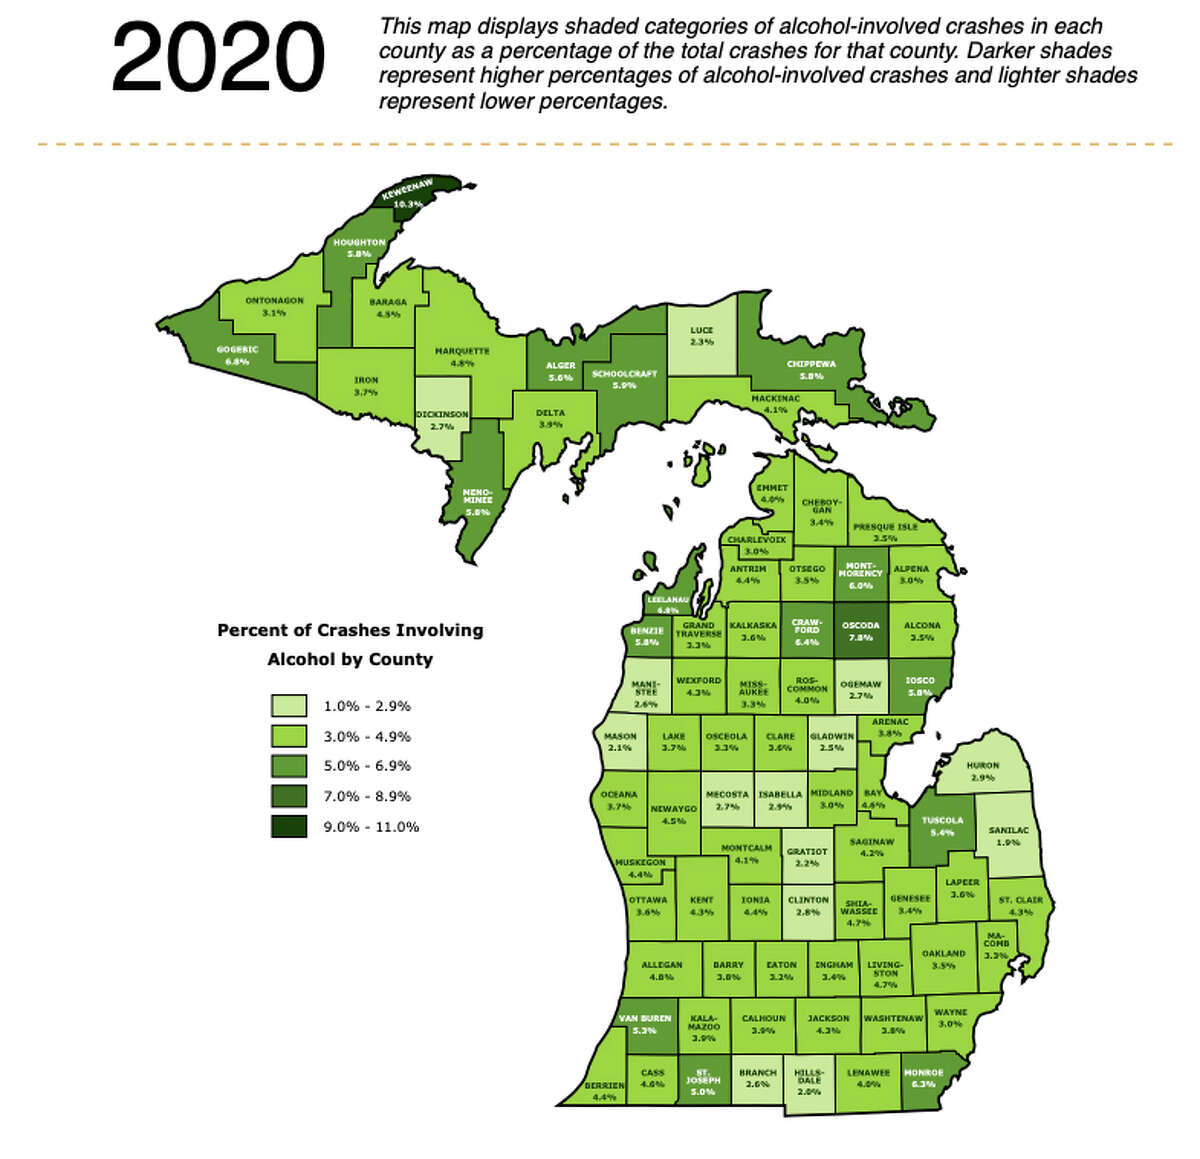 According to the Michigan Traffic Crash Facts reports that center on alcohol or drug involved crashes, Manistee County was shown in the tier with the lowest percentages of crashes involving alcohol by county at 2.8%.